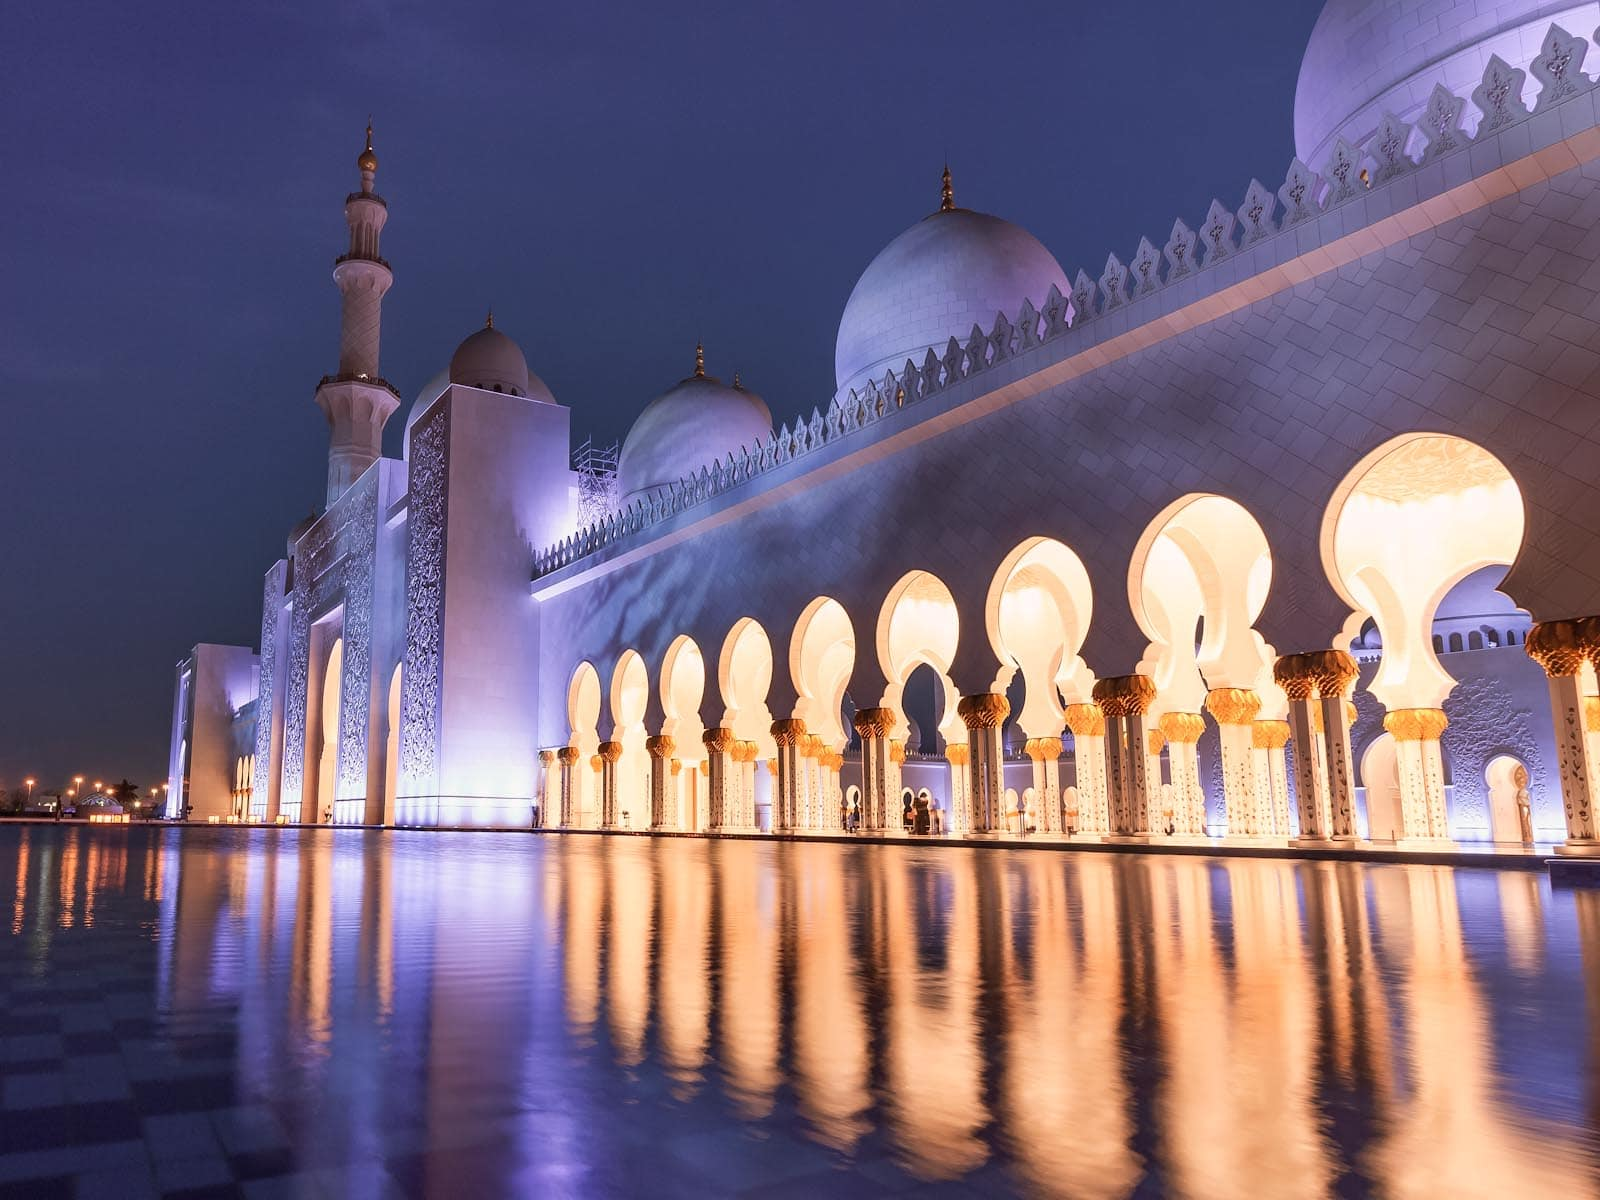 Arches lit up in blue at the Sheikh Zayed Grand Mosque Abu Dhabi